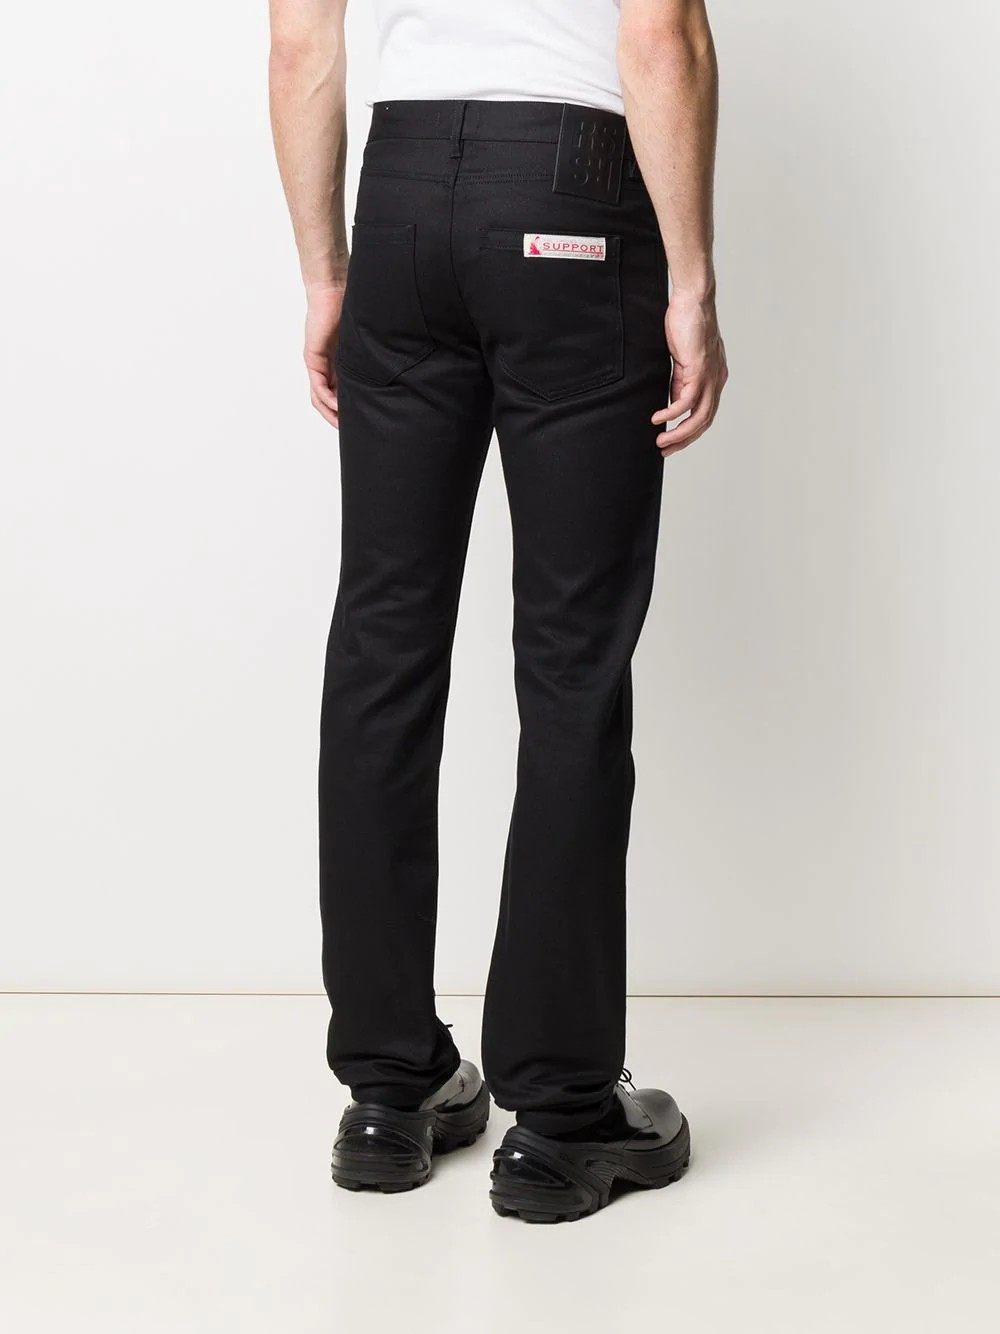 Slim fit denim pants with label